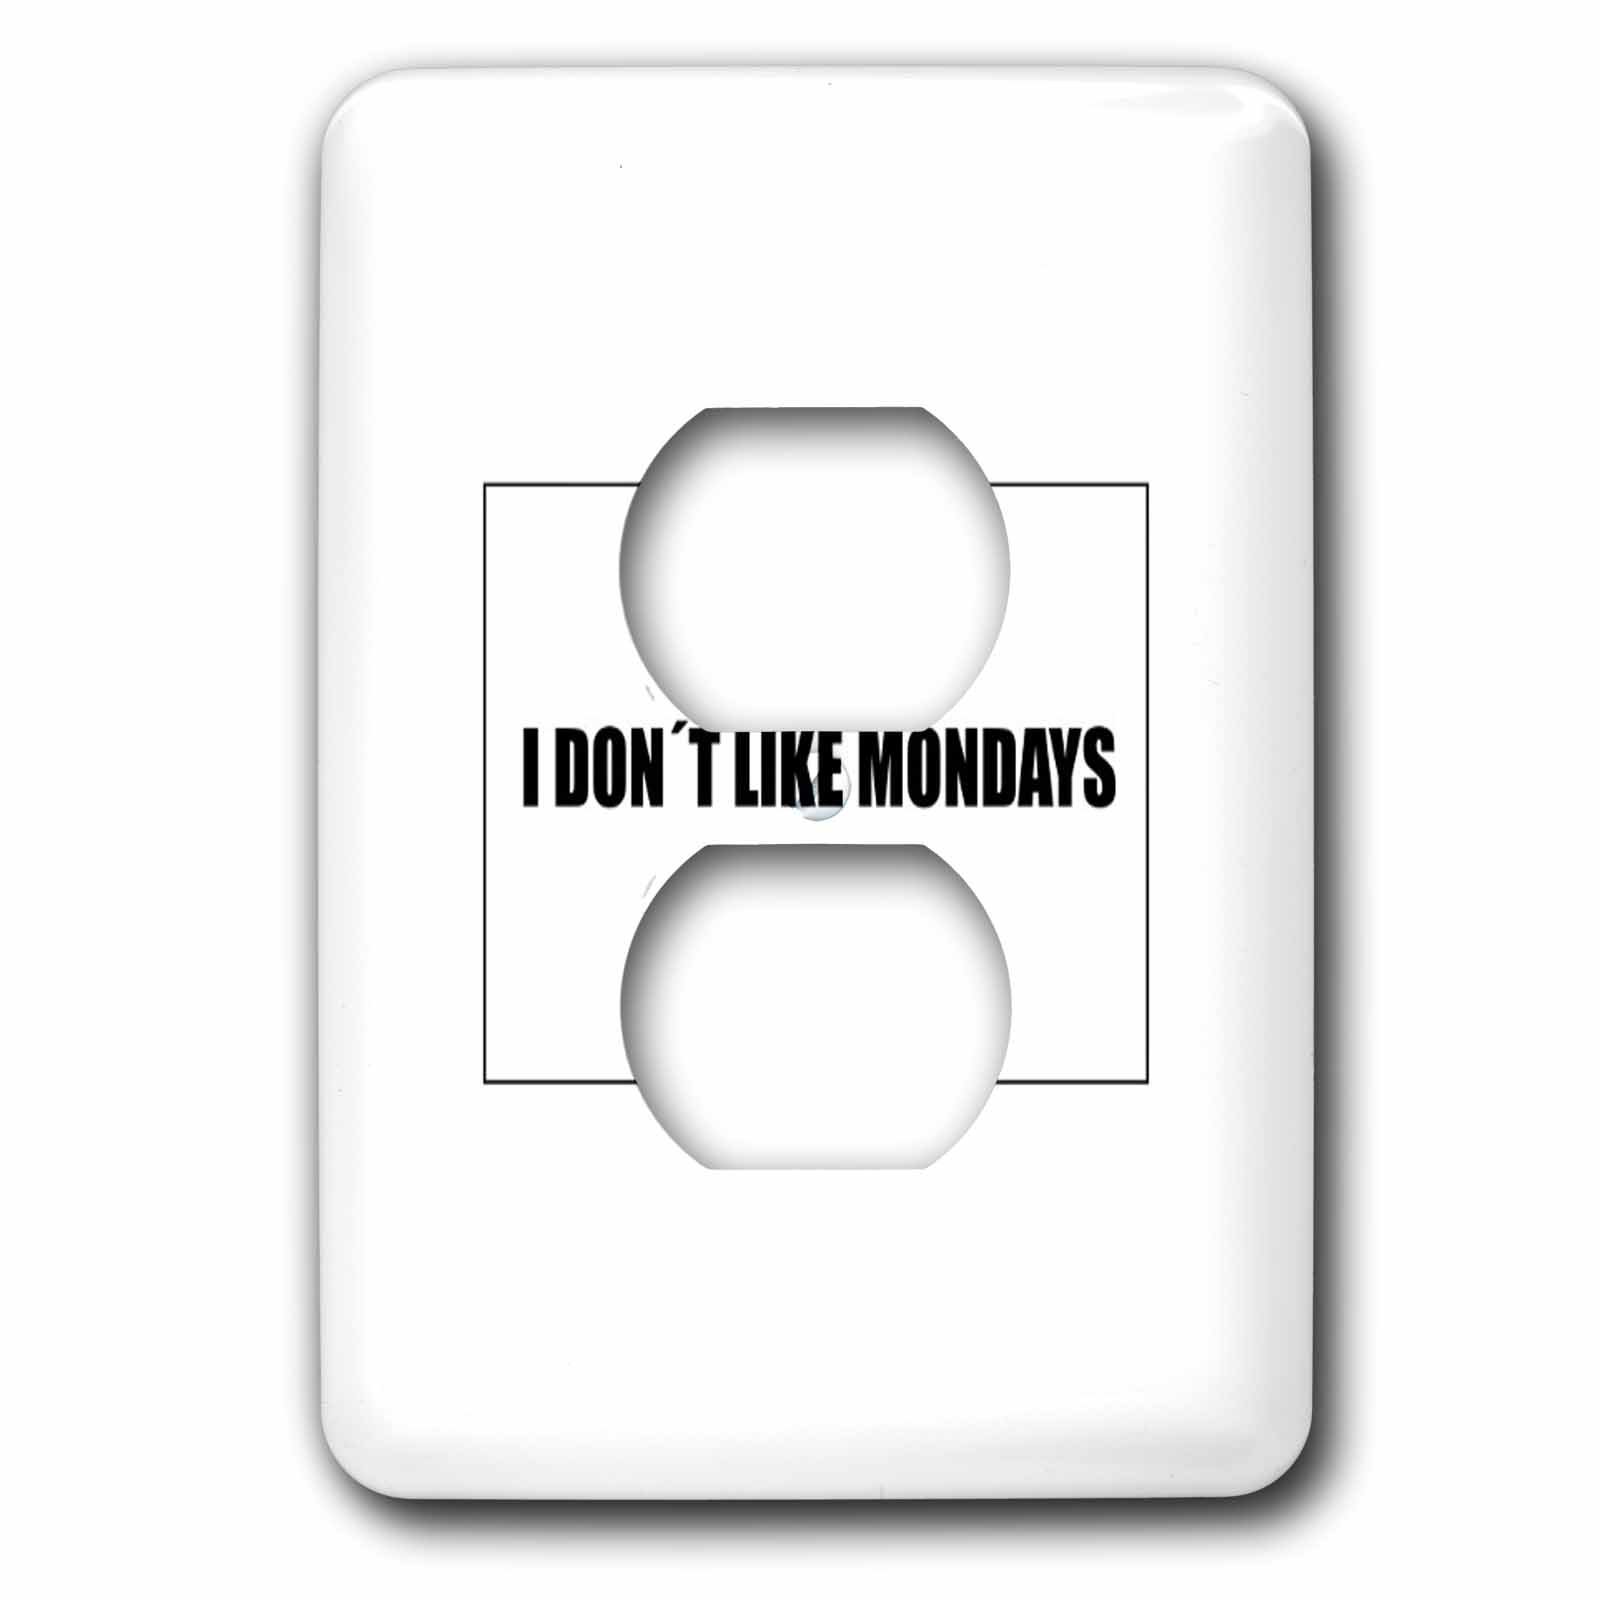 3dRose Kultjers Hint of Music - I dont like Mondays - Light Switch Covers - 2 plug outlet cover (lsp_282715_6)